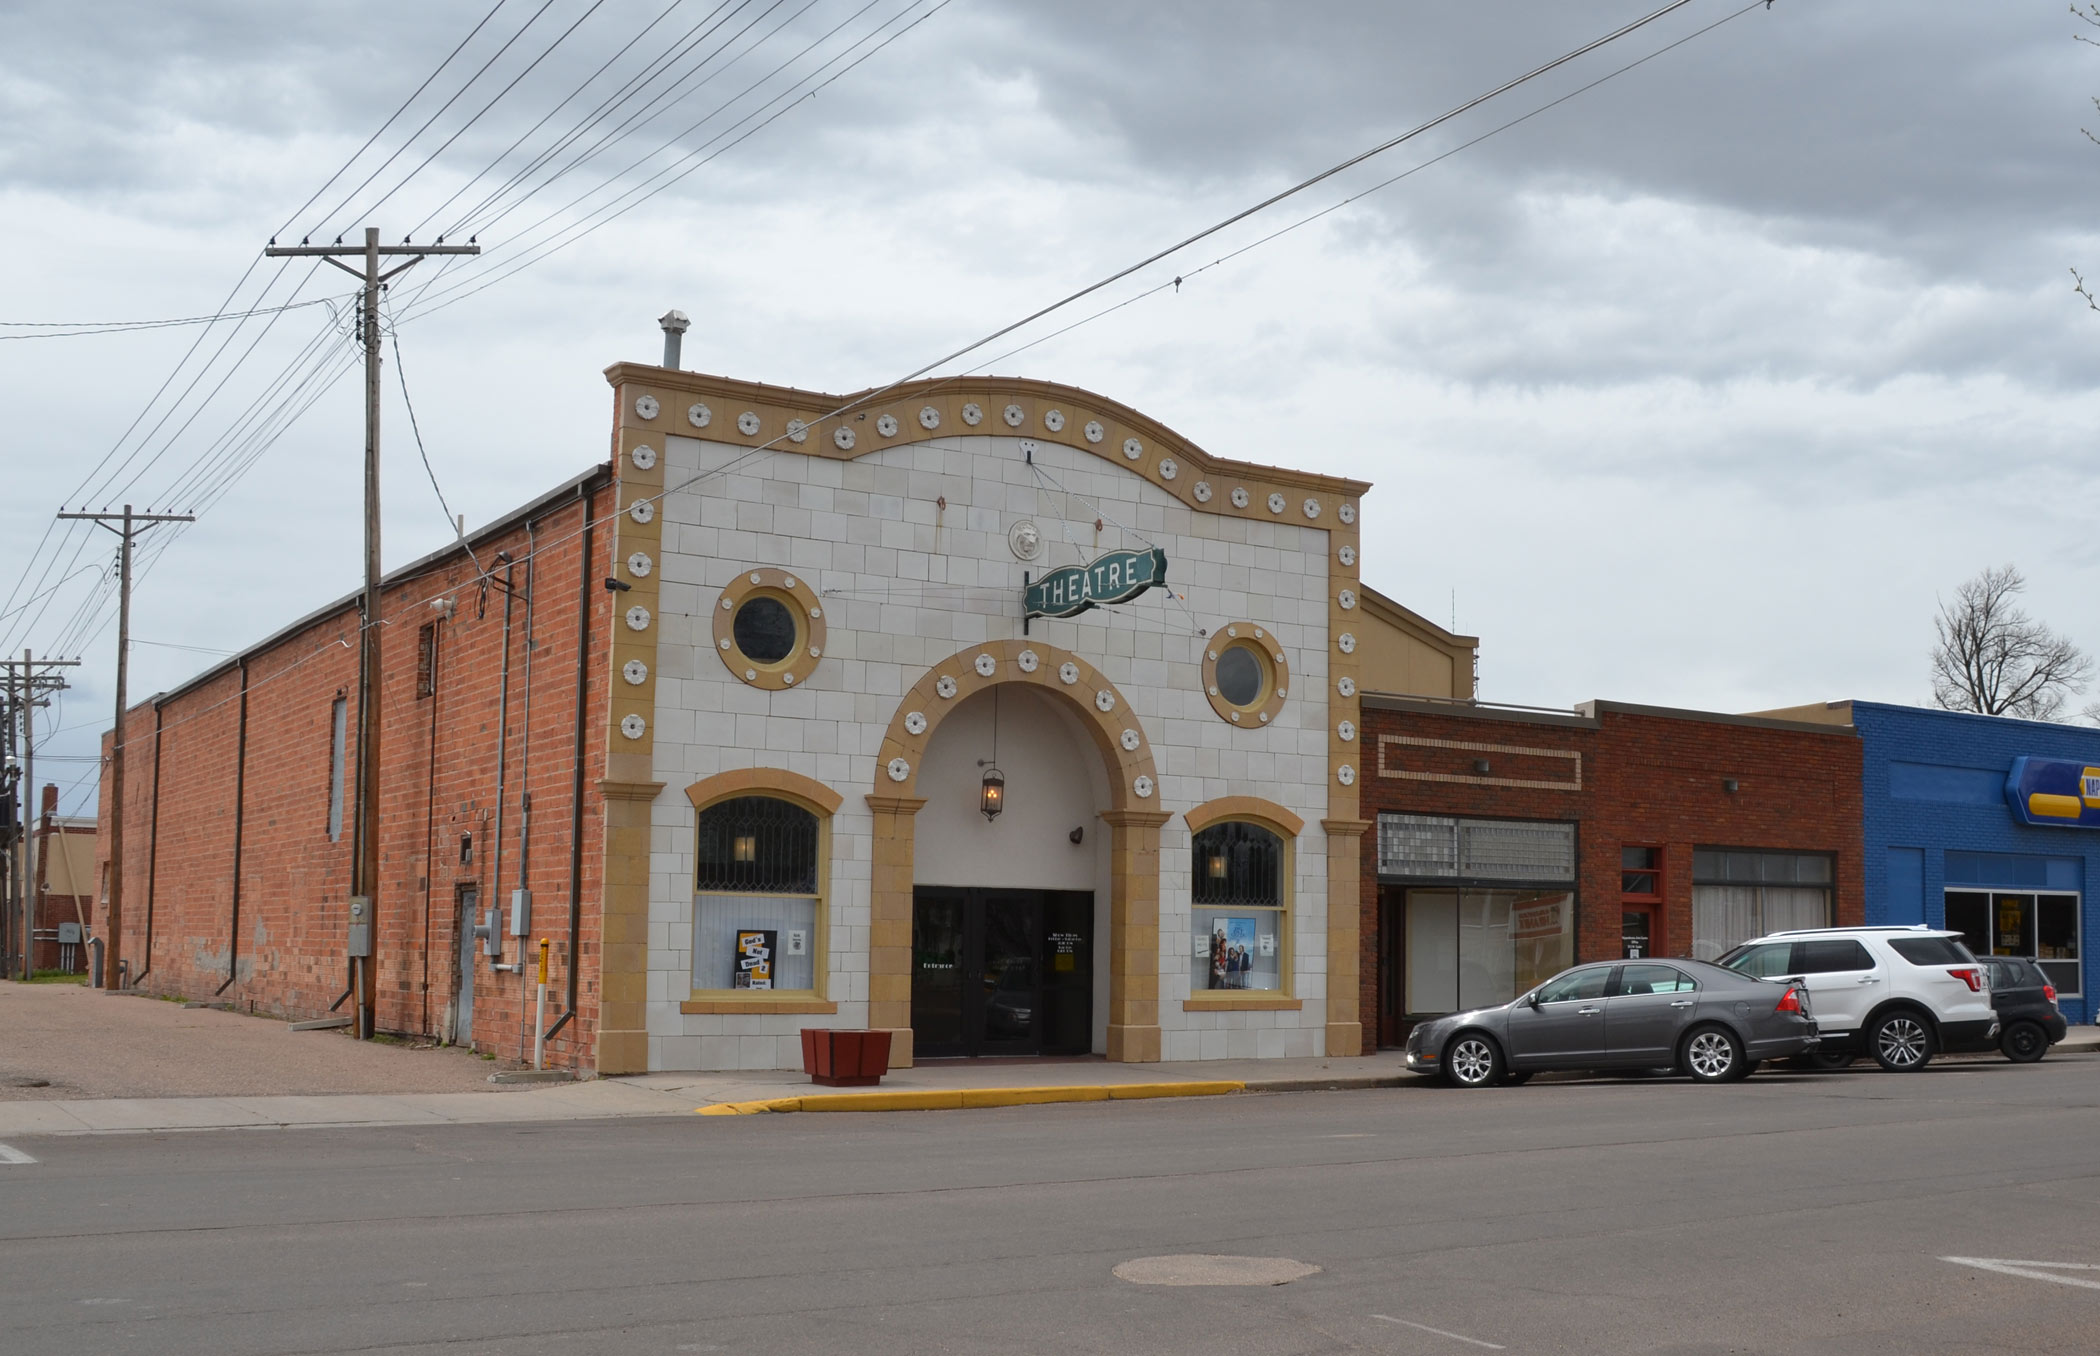 The Hippodrome Theatre in Julesburg.